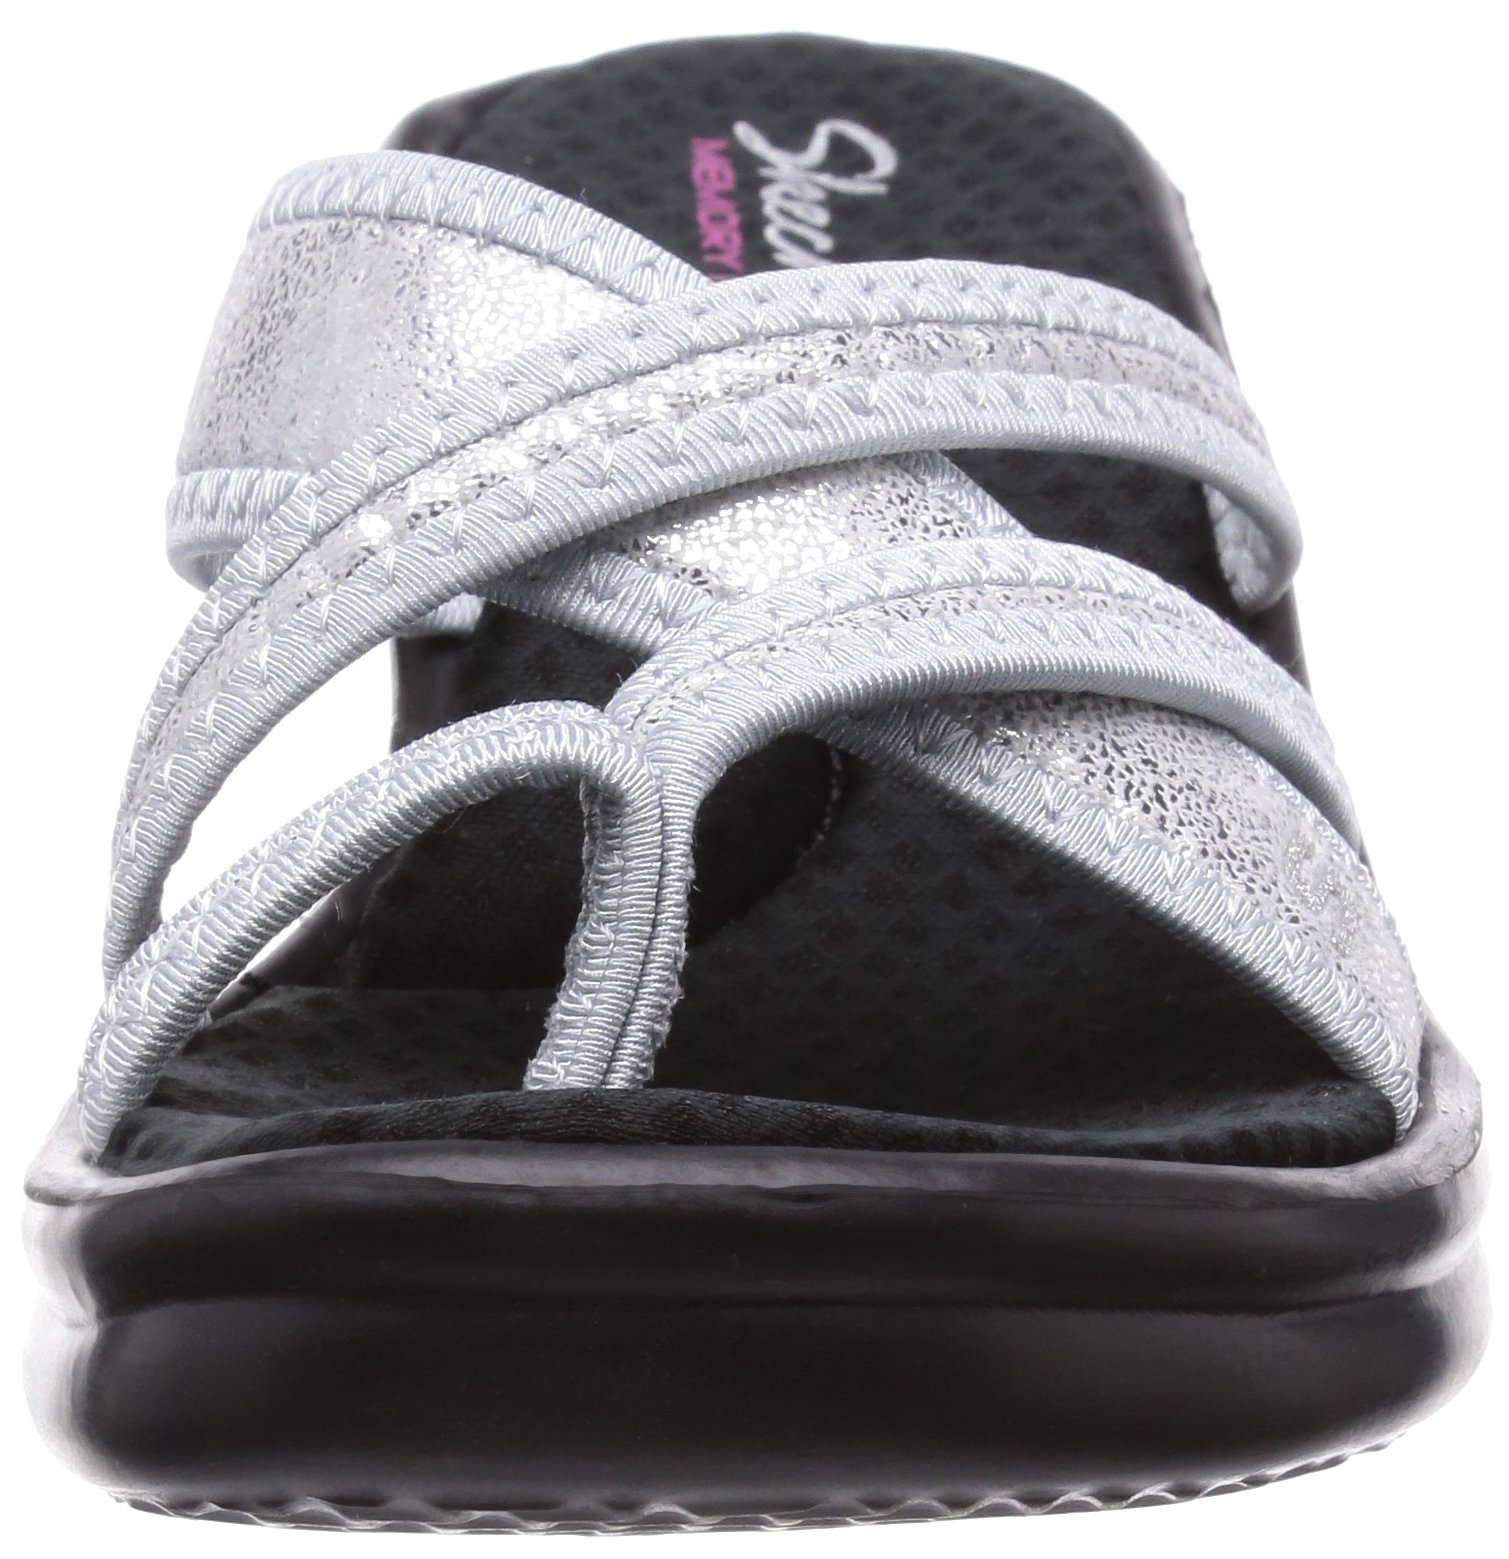 Skechers Cali Women's Rumblers-Young at Heart Wedge Sandal,Silver Sparkle,7 M US by Skechers (Image #4)